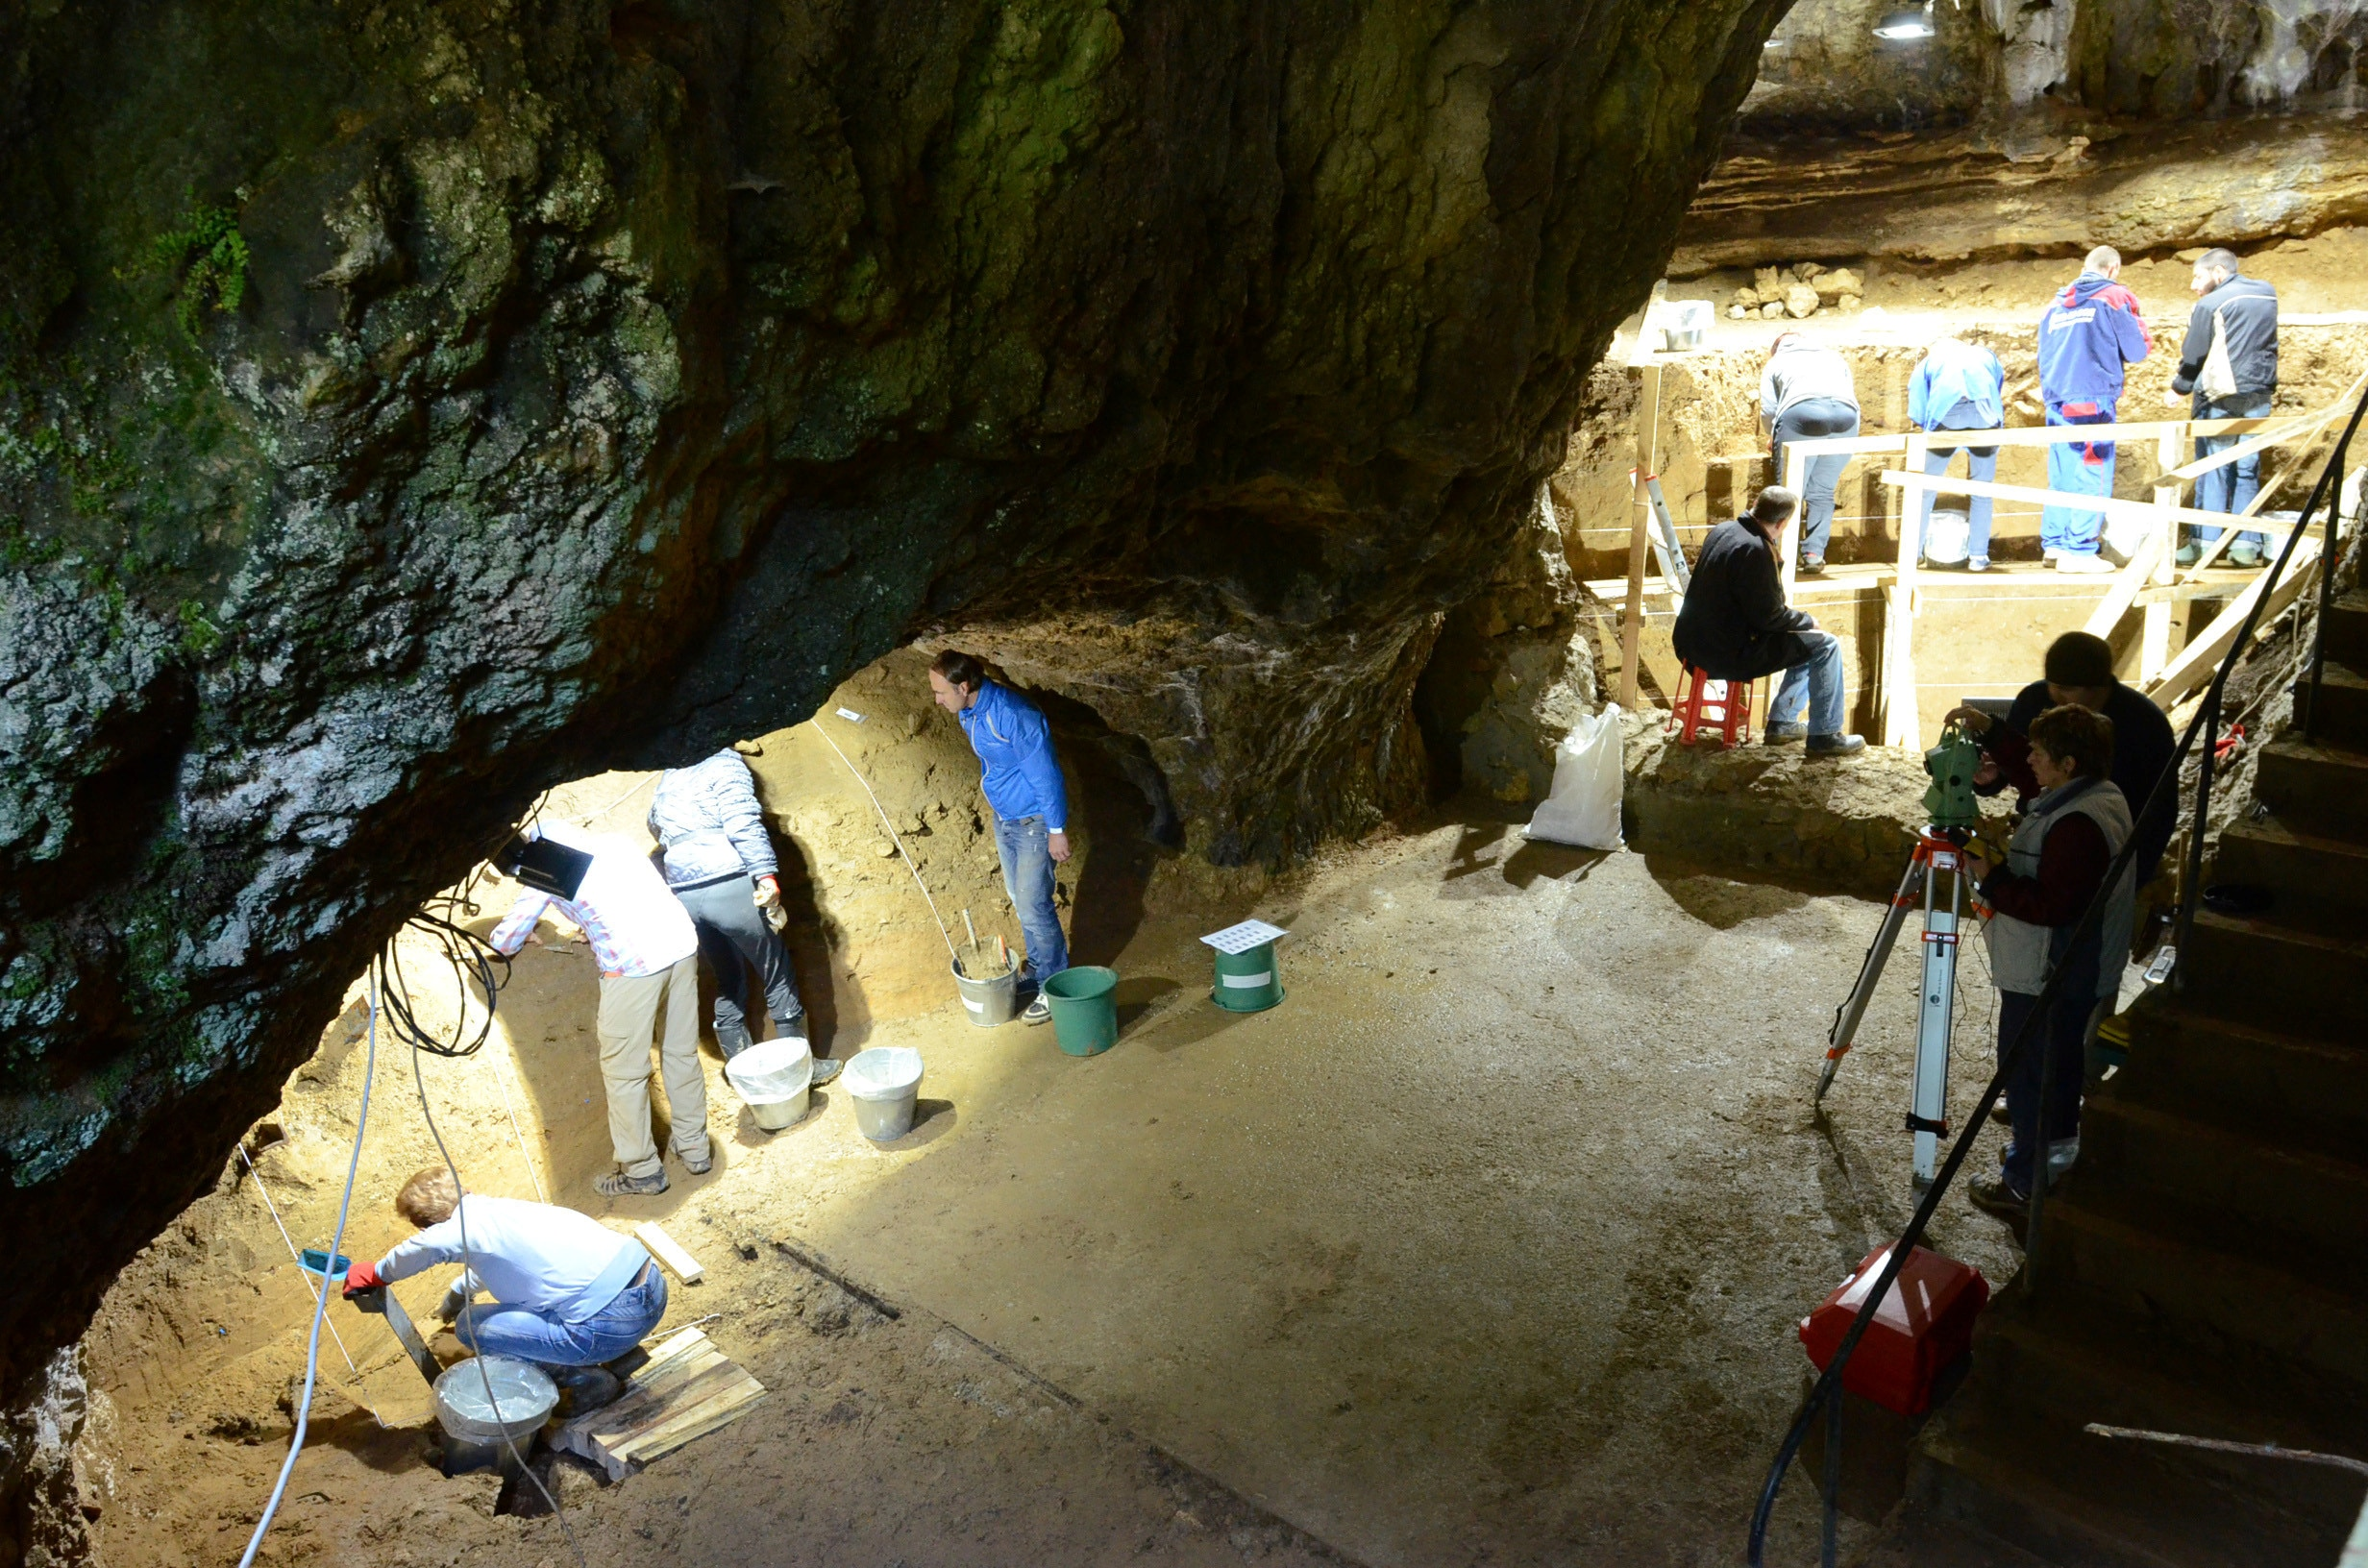 Bulgarian Cave Remains Reveal Surprises About Earliest Homo Sapiens in Europe